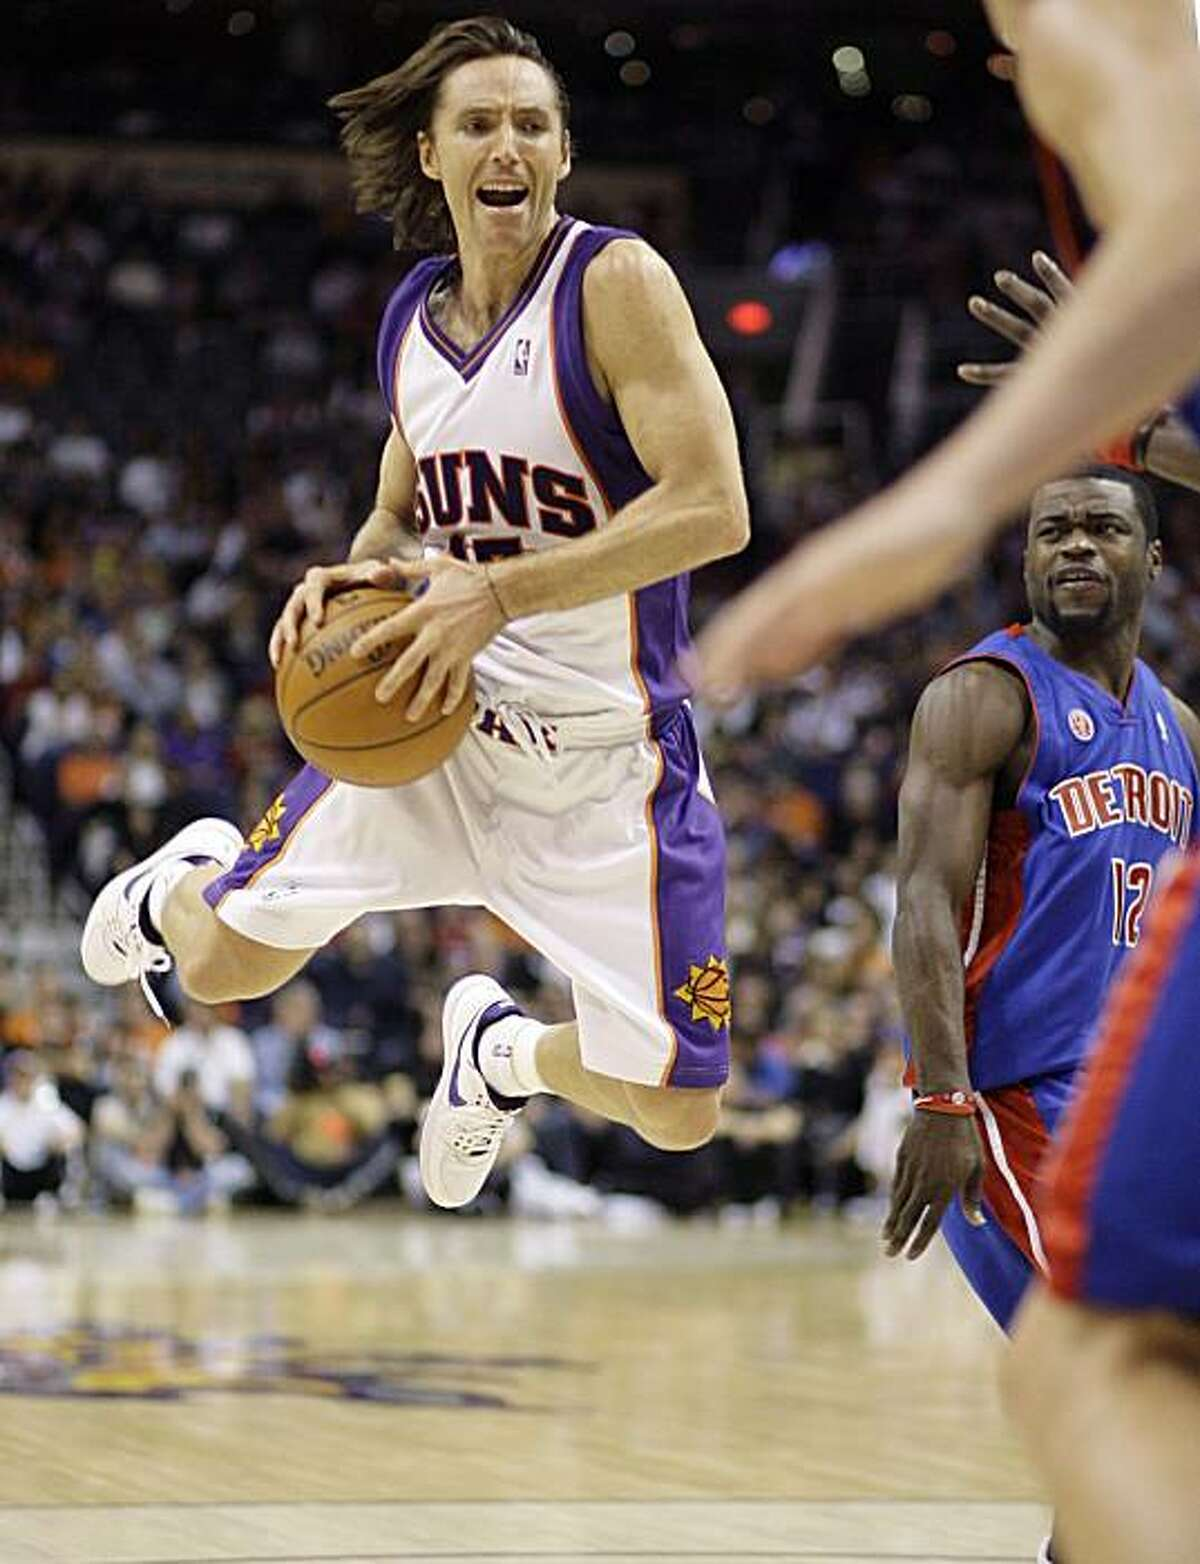 Phoenix Suns guard Steve Nash, left, reacts to being fouled by Detroit Pistons guard Will Bynum, right, during the third quarter of an NBA basketball game Sunday, Nov. 22, 2009, in Phoenix. The Suns won 117-91. (AP Photo/Paul Connors)